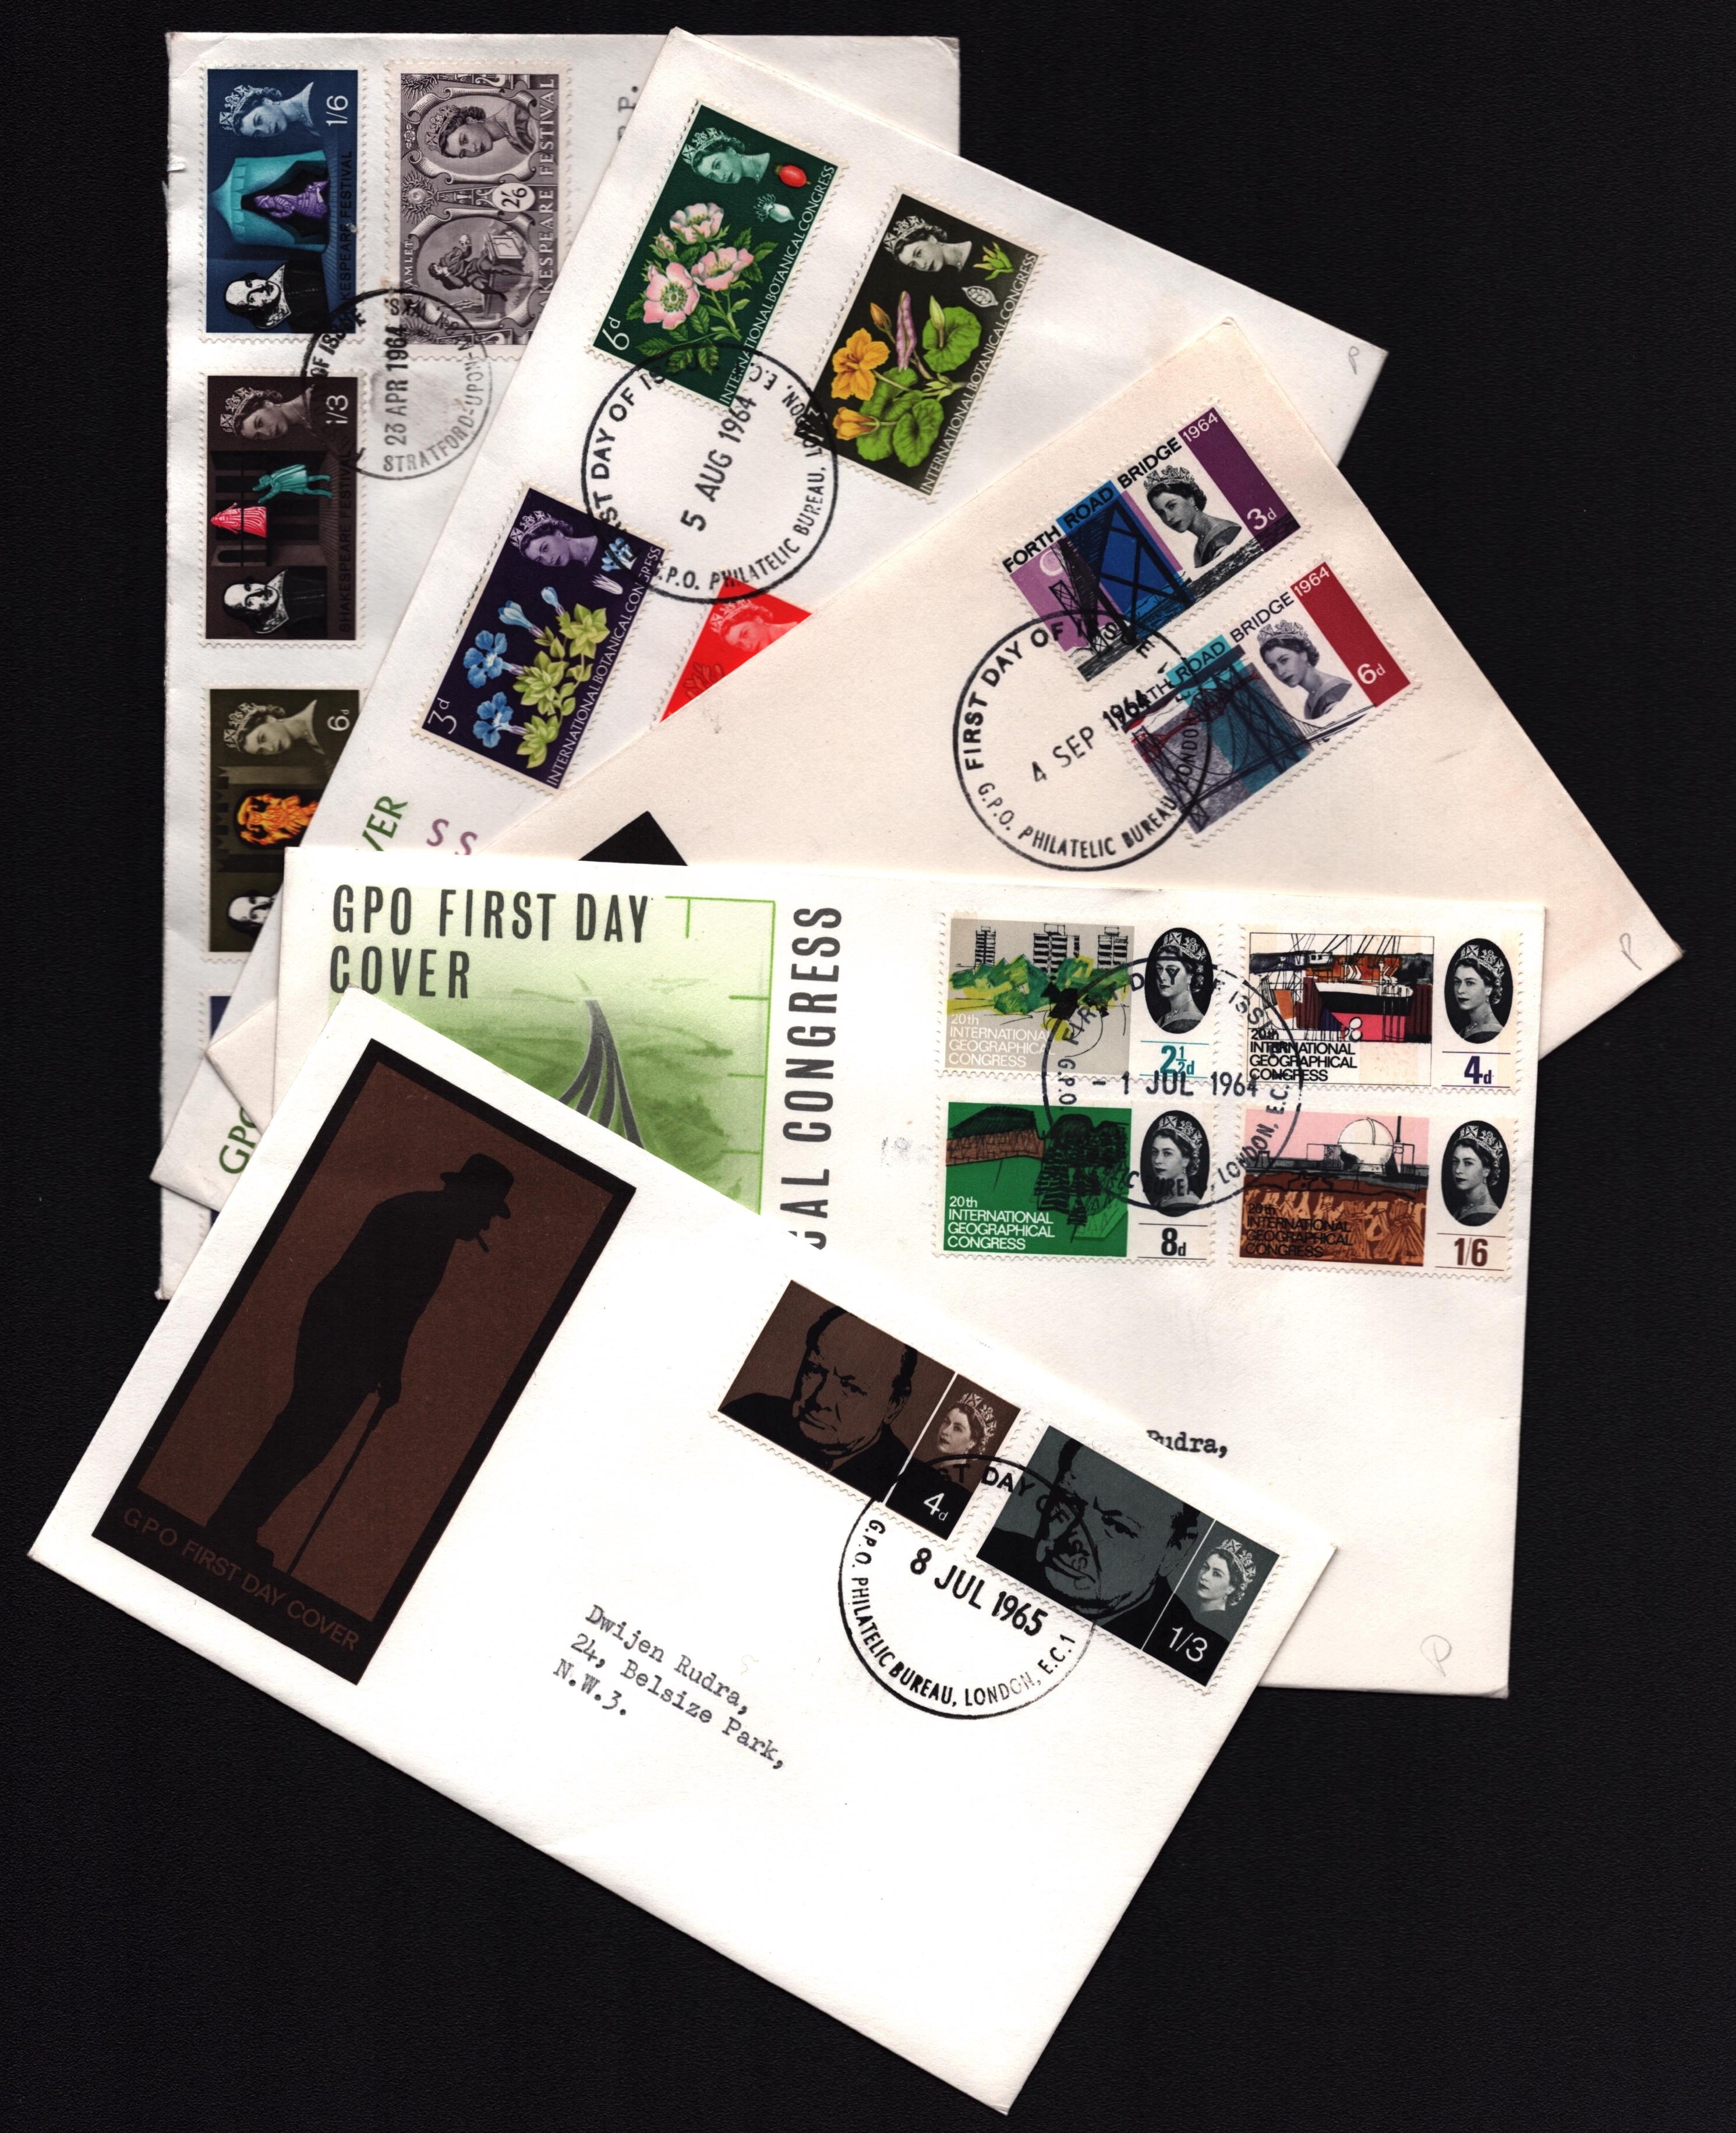 5 GB FDC collection. 1964/1965. Cat value approx £80. Good condition. We combine postage on multiple